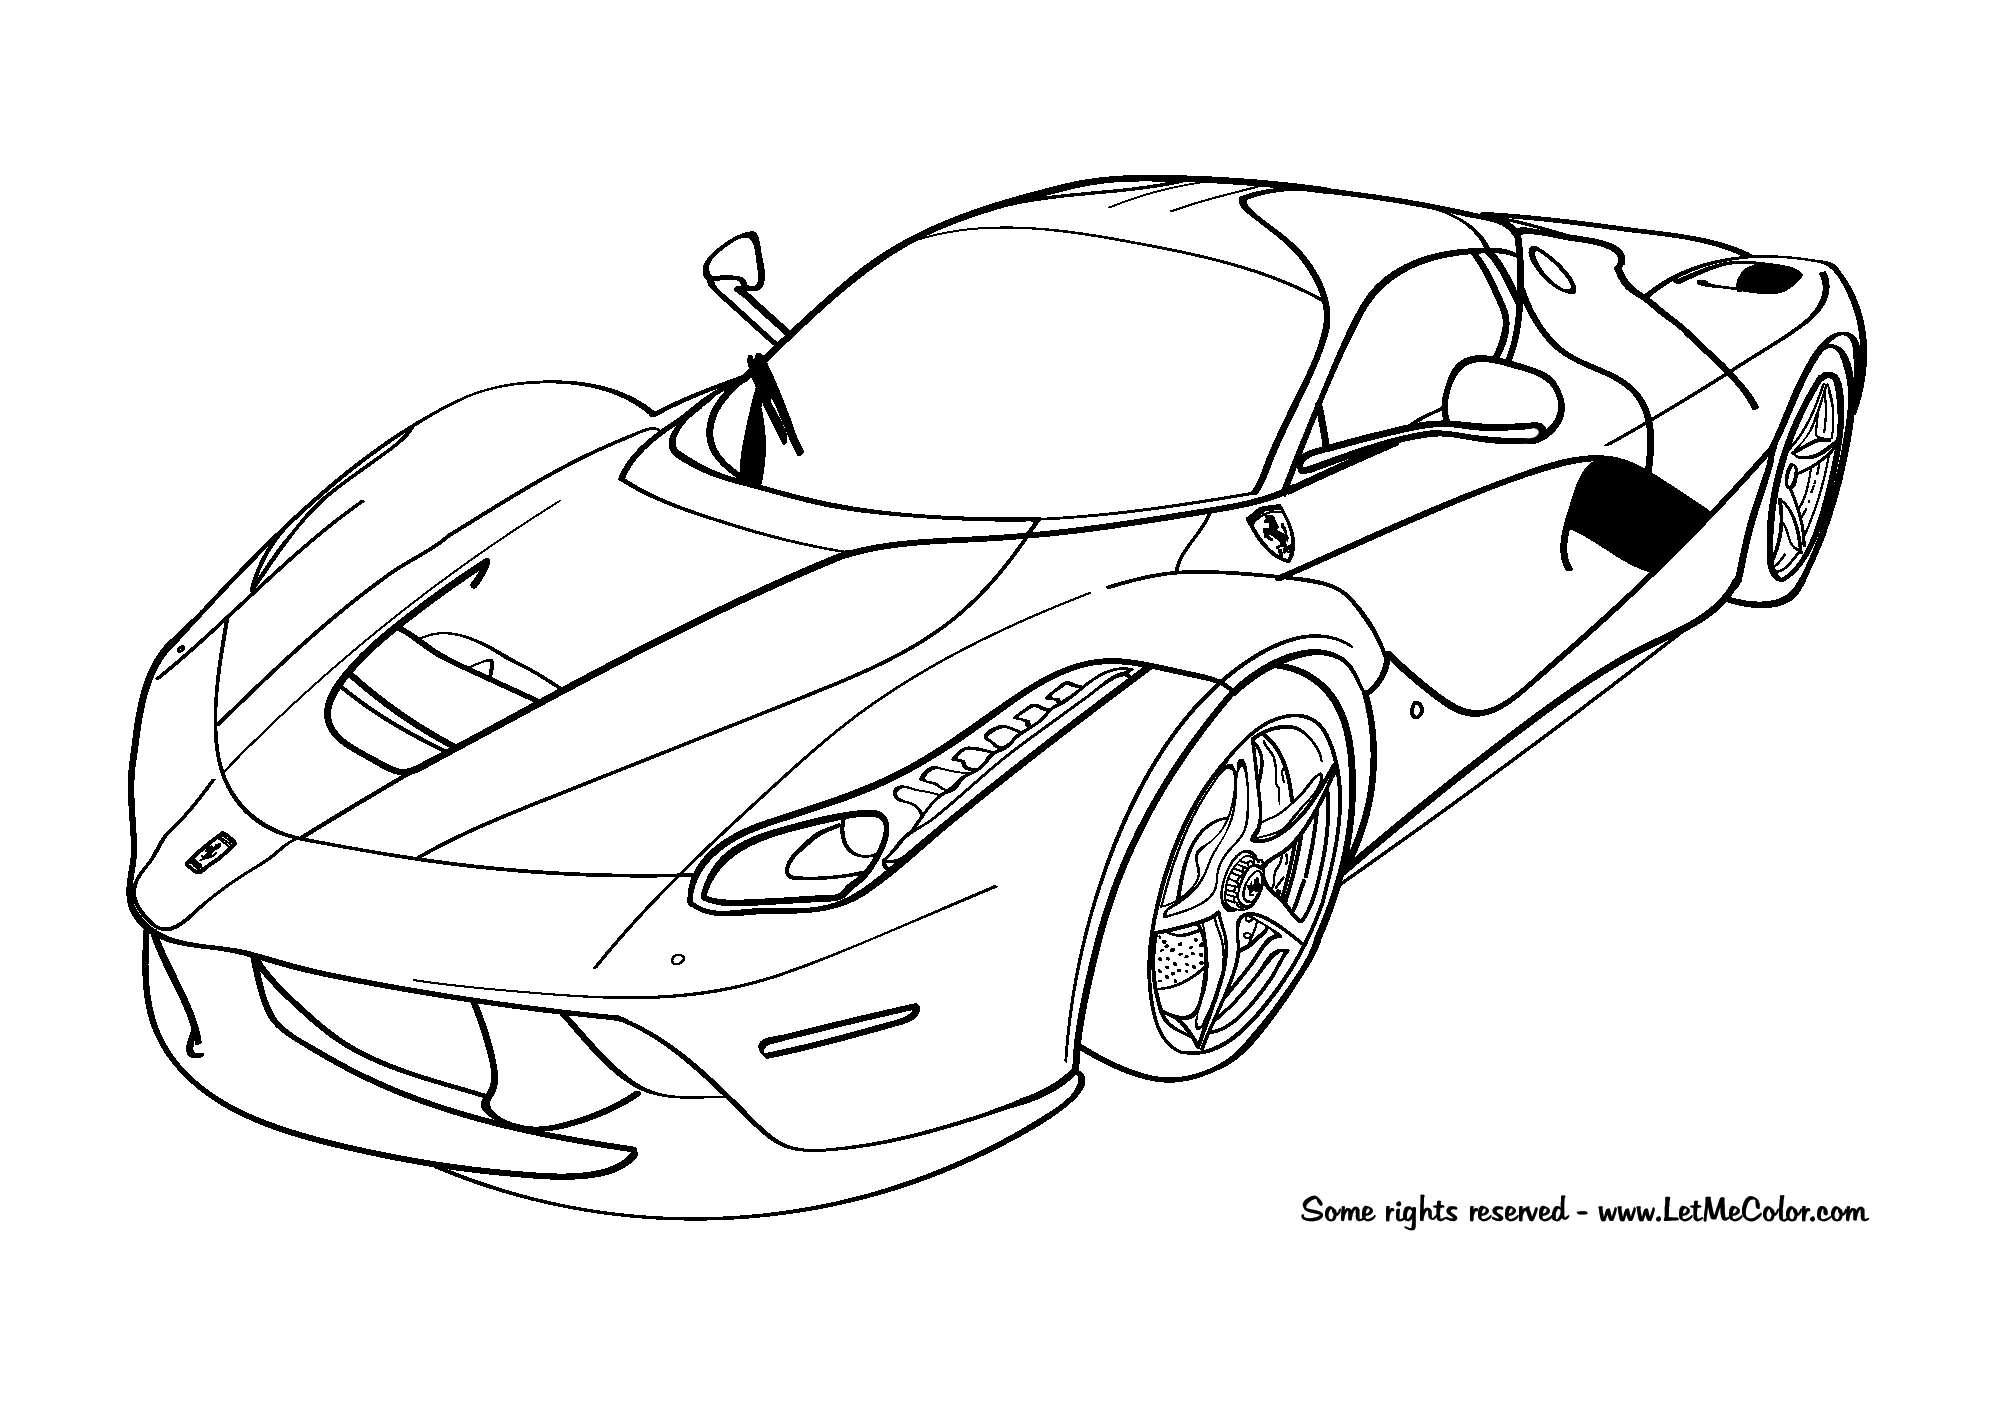 Cars-coloring-page-Ferrari-LaFerrari-F150-LetMeColor.com | Projects ...